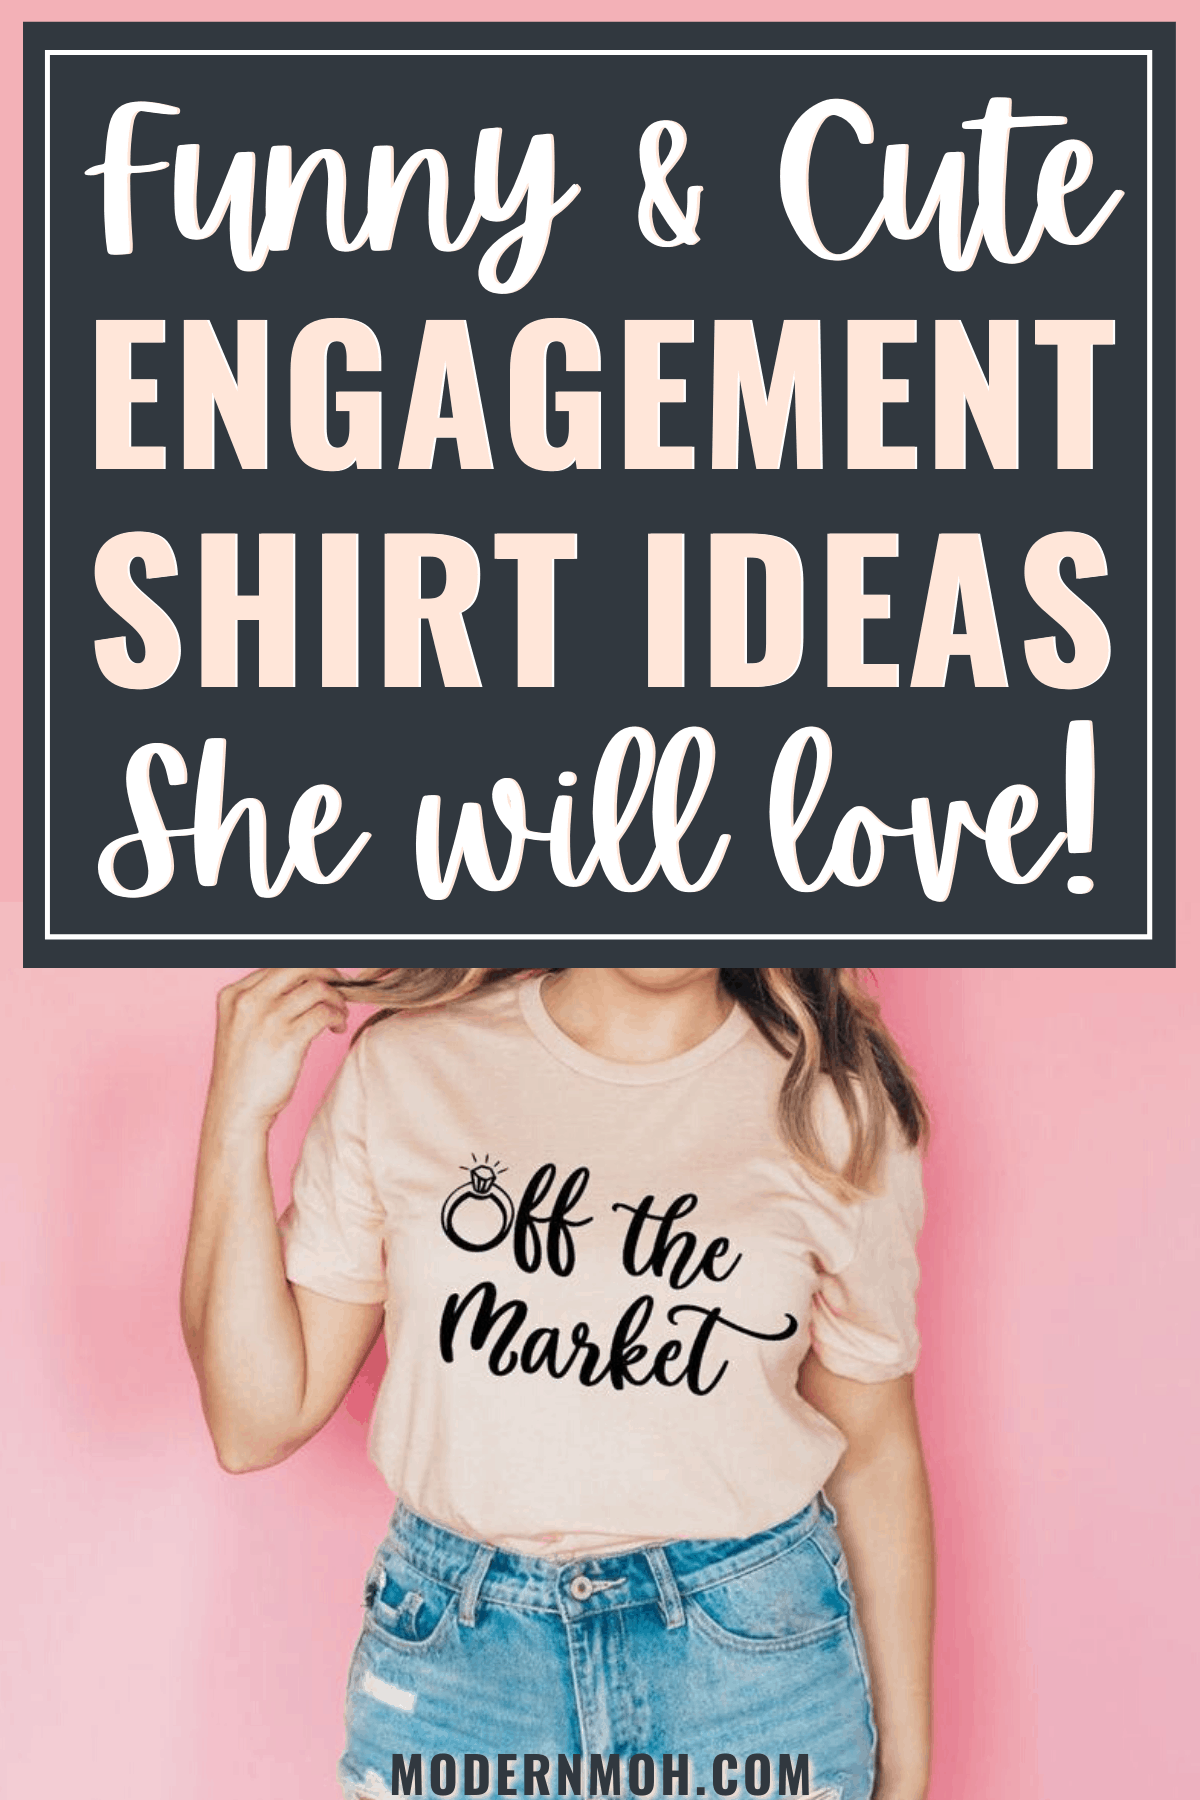 12 Engagement Shirts That Are Totally Adorable